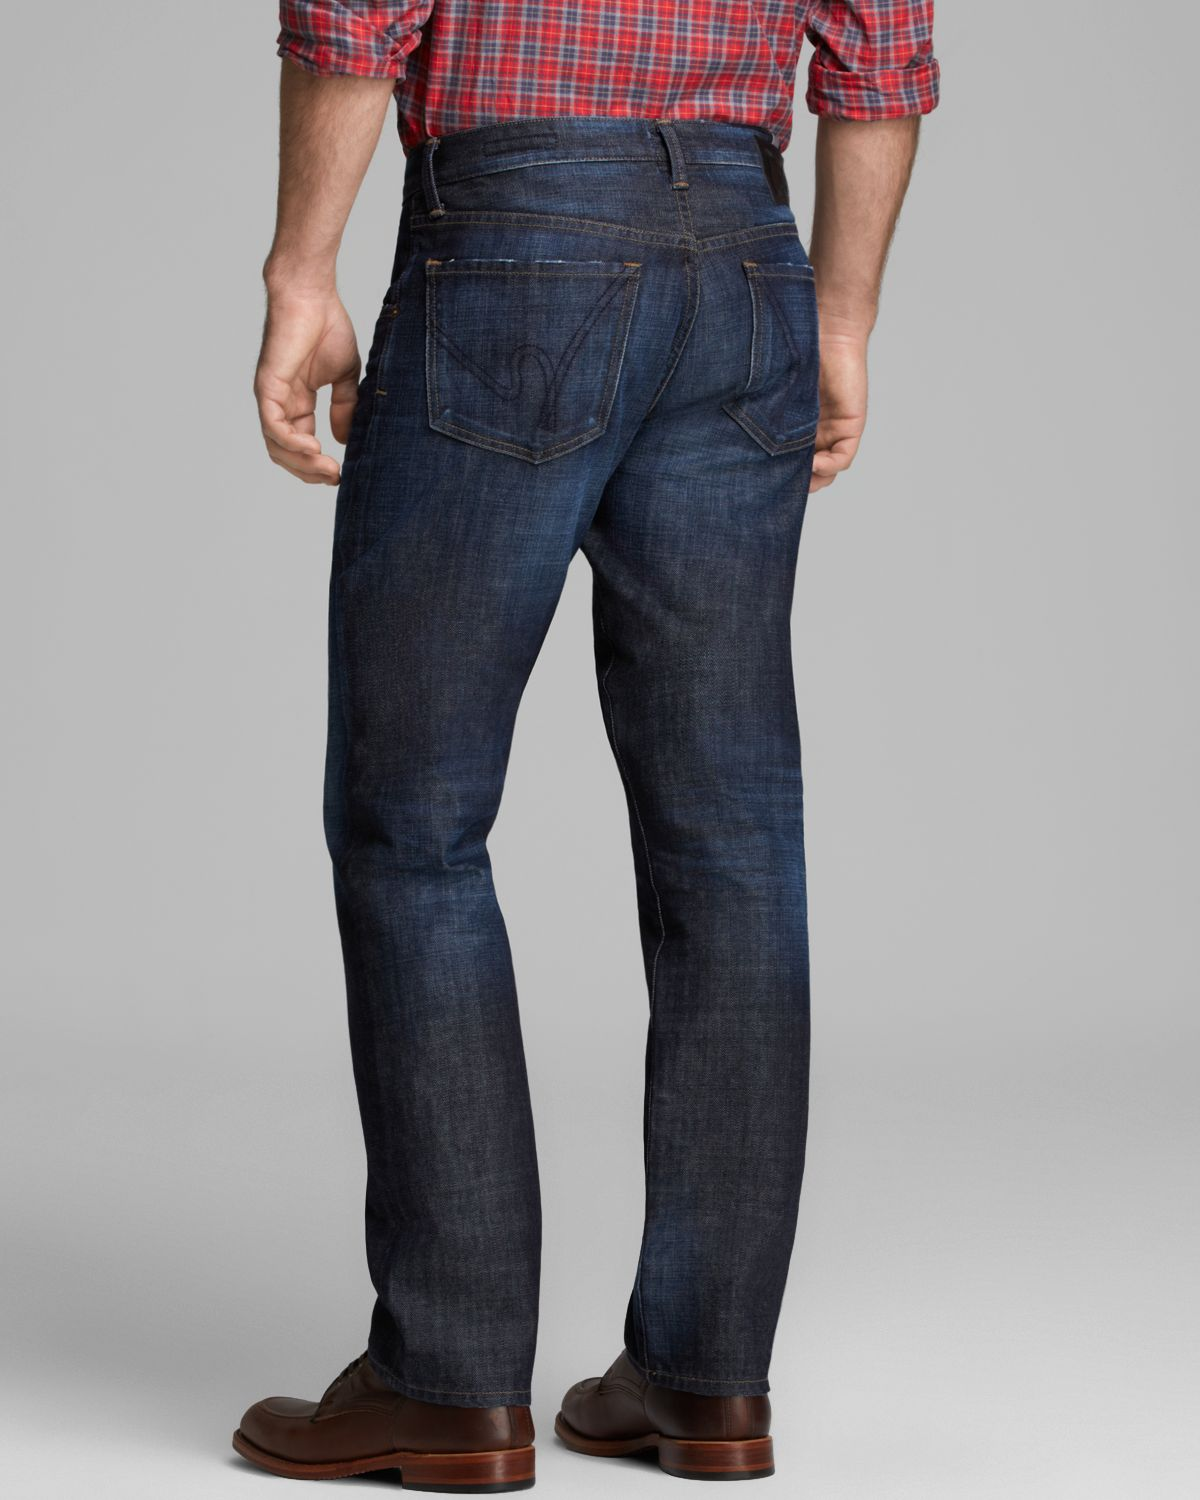 Citizens of humanity Jeans Perfect Straight Fit in Colt in Blue ...